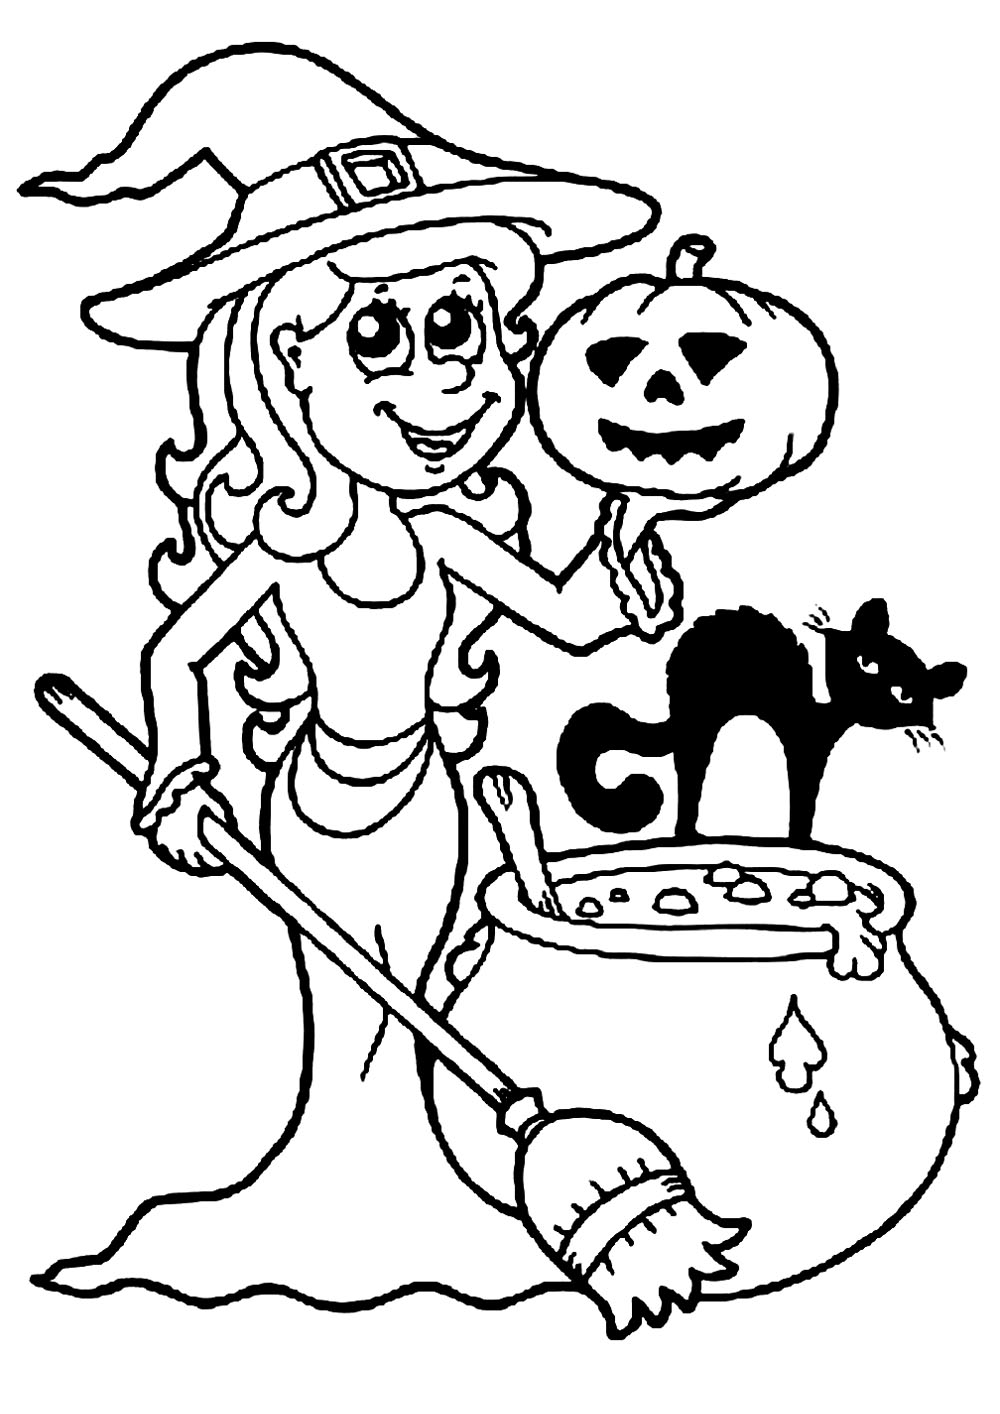 halloween color pages halloween free to color for kids halloween kids coloring halloween color pages